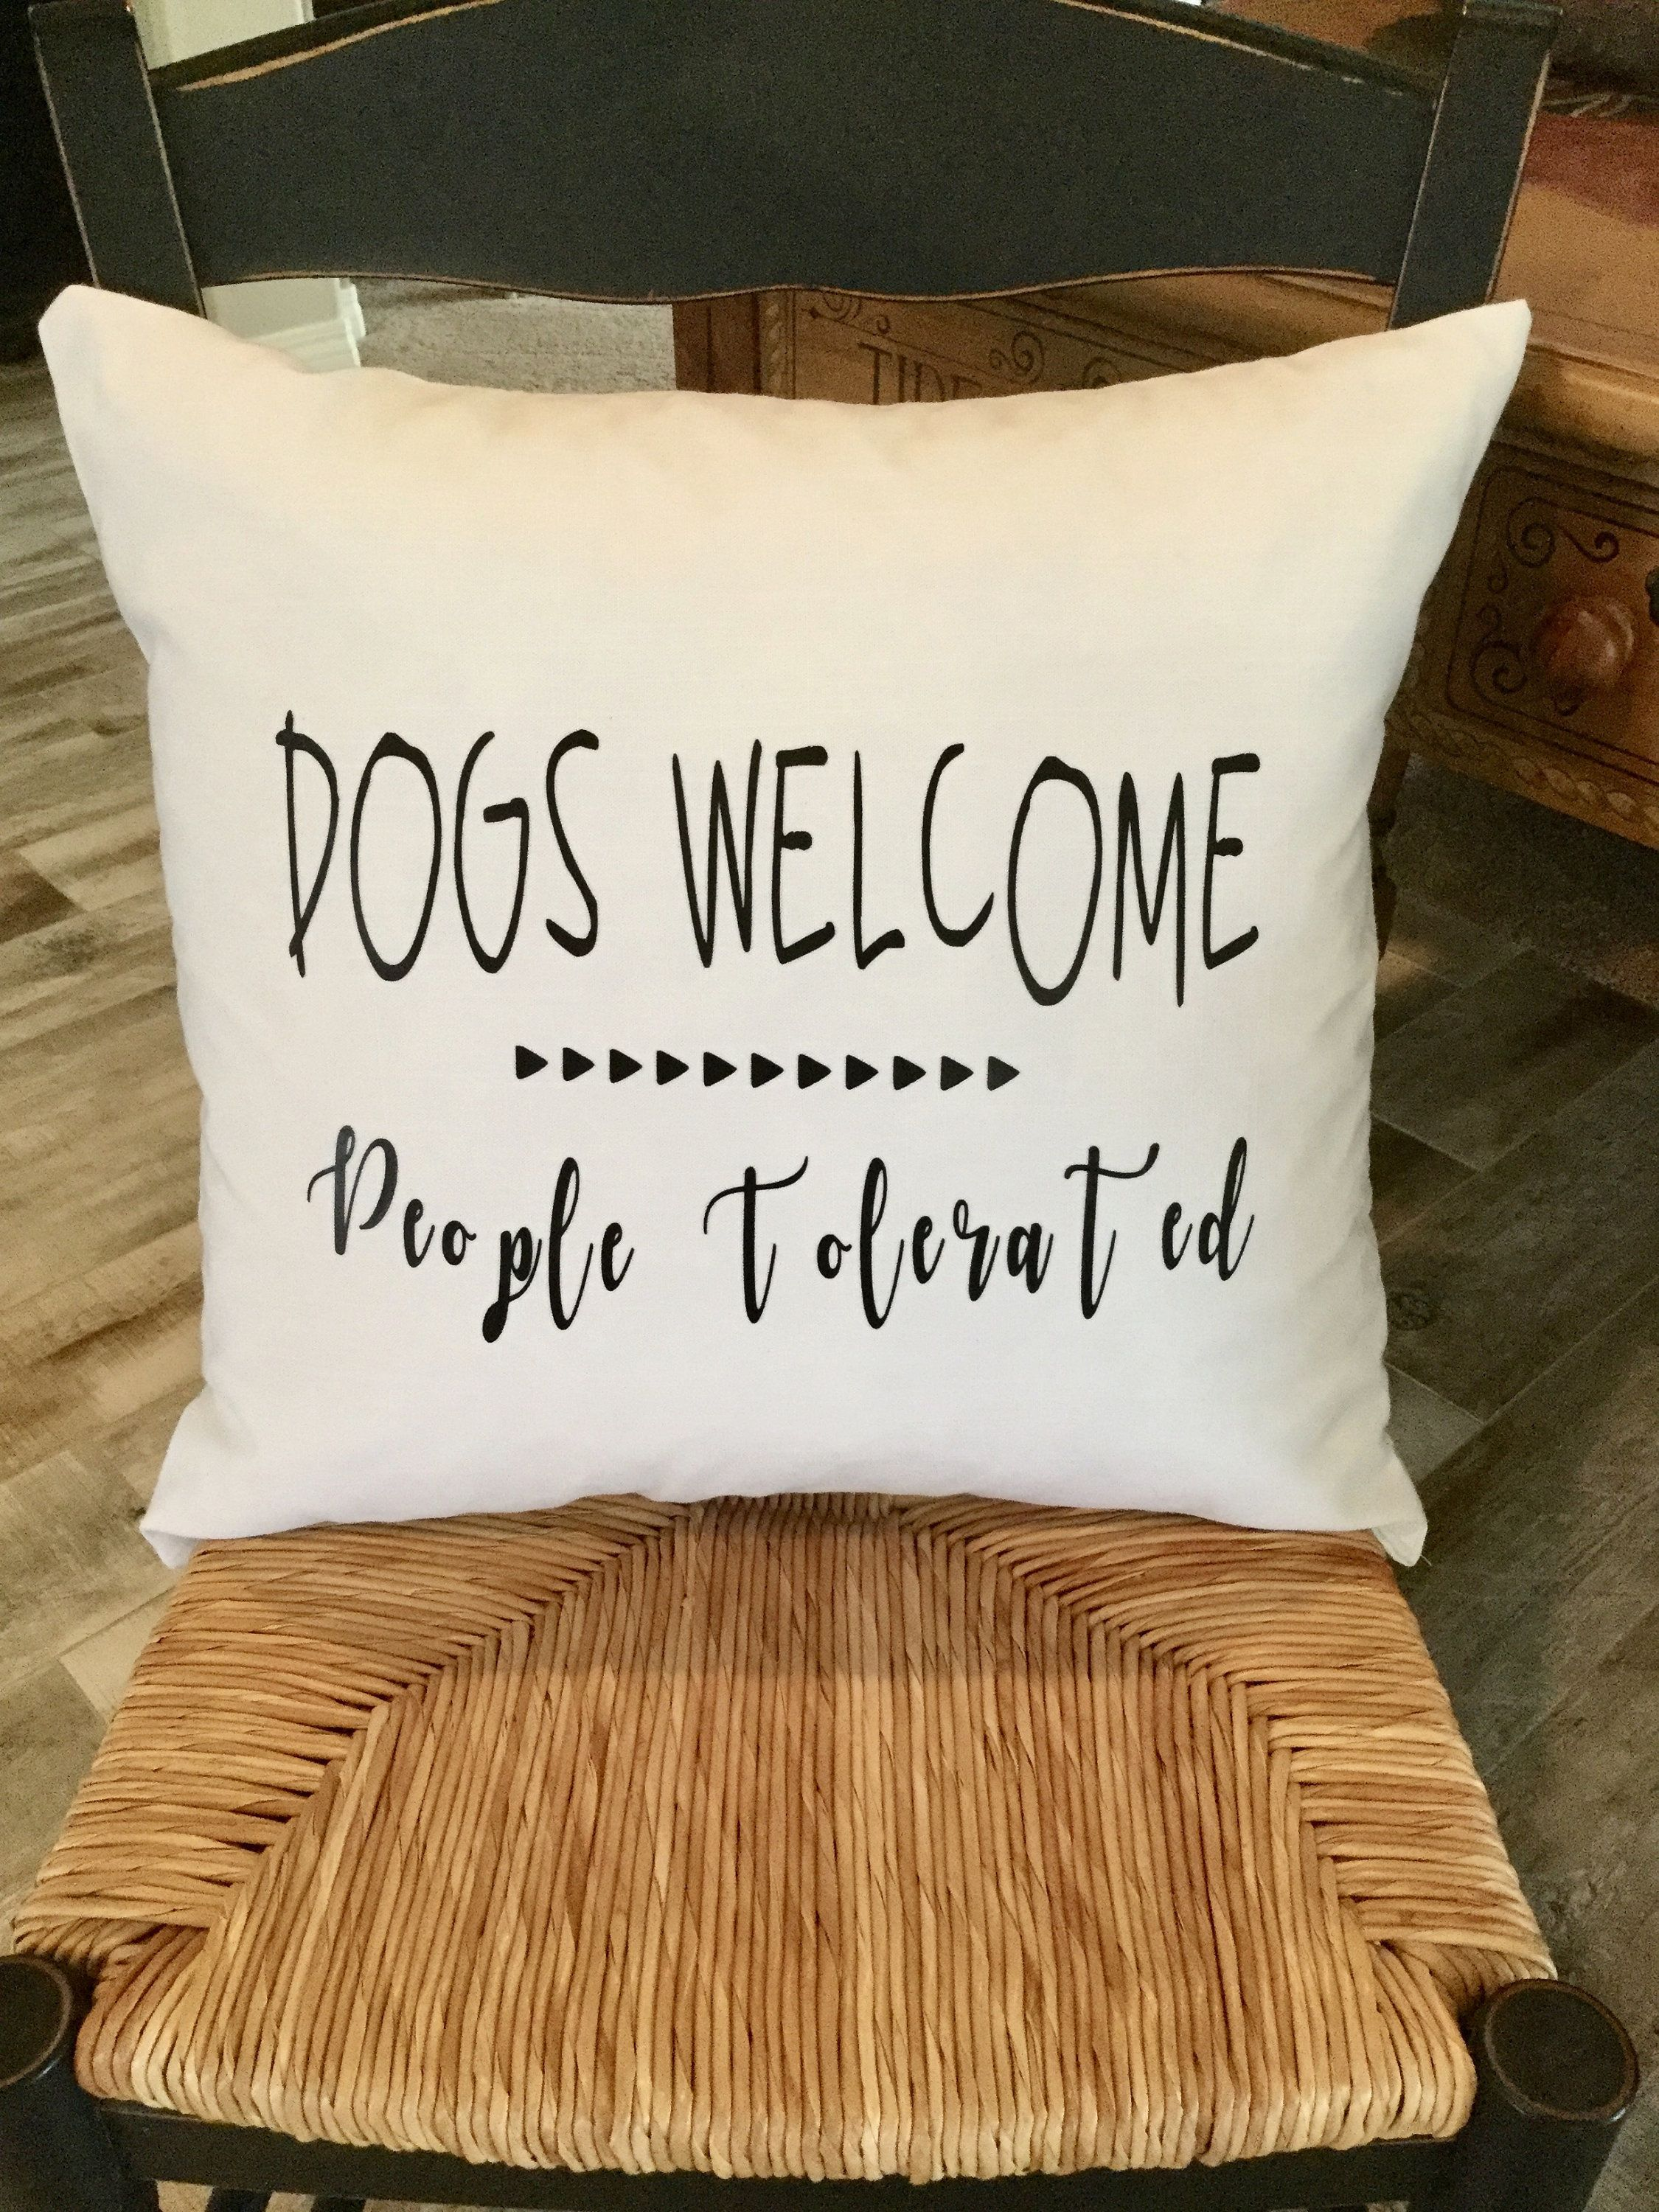 Feather Pillows With Sayings Dogs Welcome People Tolerated With